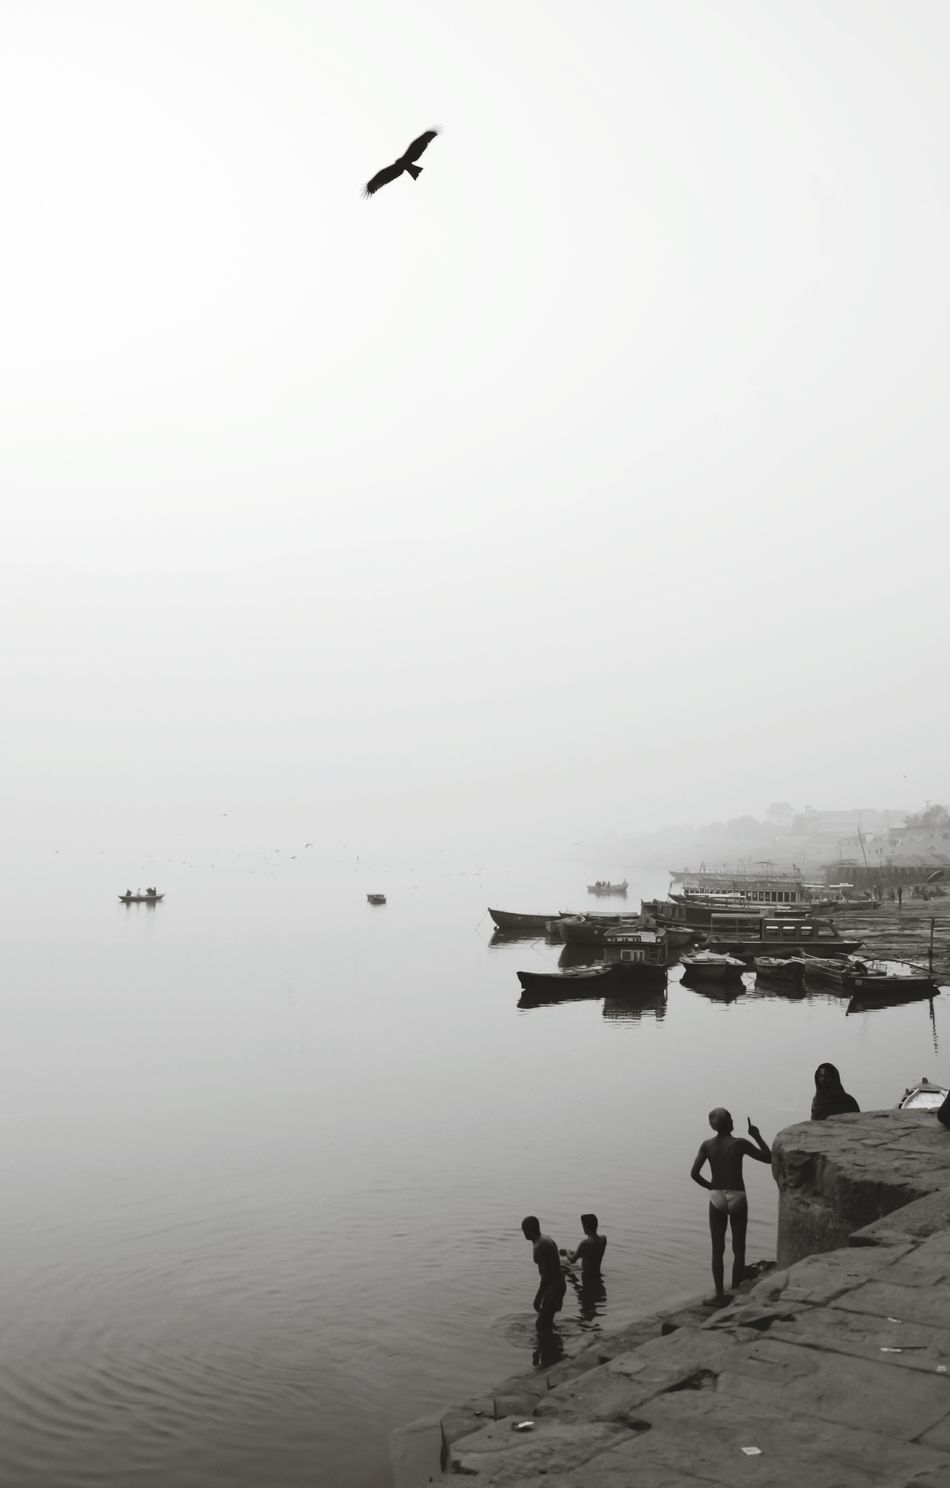 The misty morning in Varanasi Varanasi Ghats Varanasi_igers Gangariver Varanasi Ganges Varanasi Varanasi India Ganga River Ganga Ghat Hindustani Mistymorning Misty River Misty Landscape Misty Morning Misty Misty Sunrise Misty Morning Fog Misty Day Winter Winterscapes Winter Is Coming Varanasi, India Ganges, Indian Lifestyle And Culture, Bathing In The Ganges, Varanasidiaries Kashi Banaras